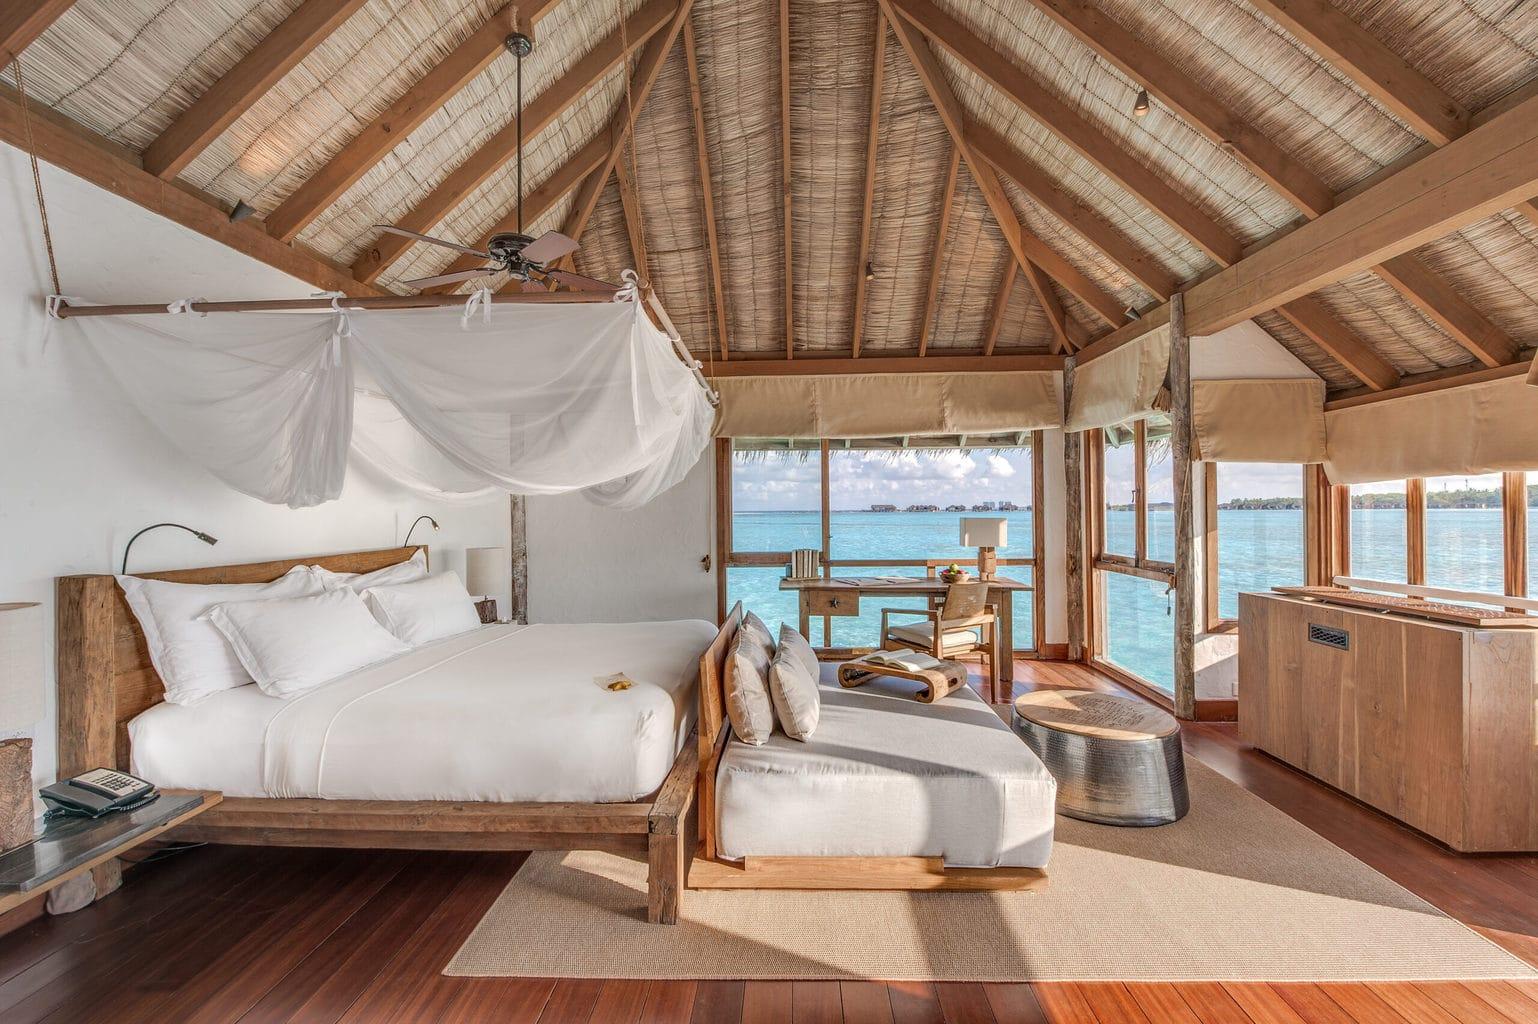 Bedroom of Residence villas at Gili Lankanfushi